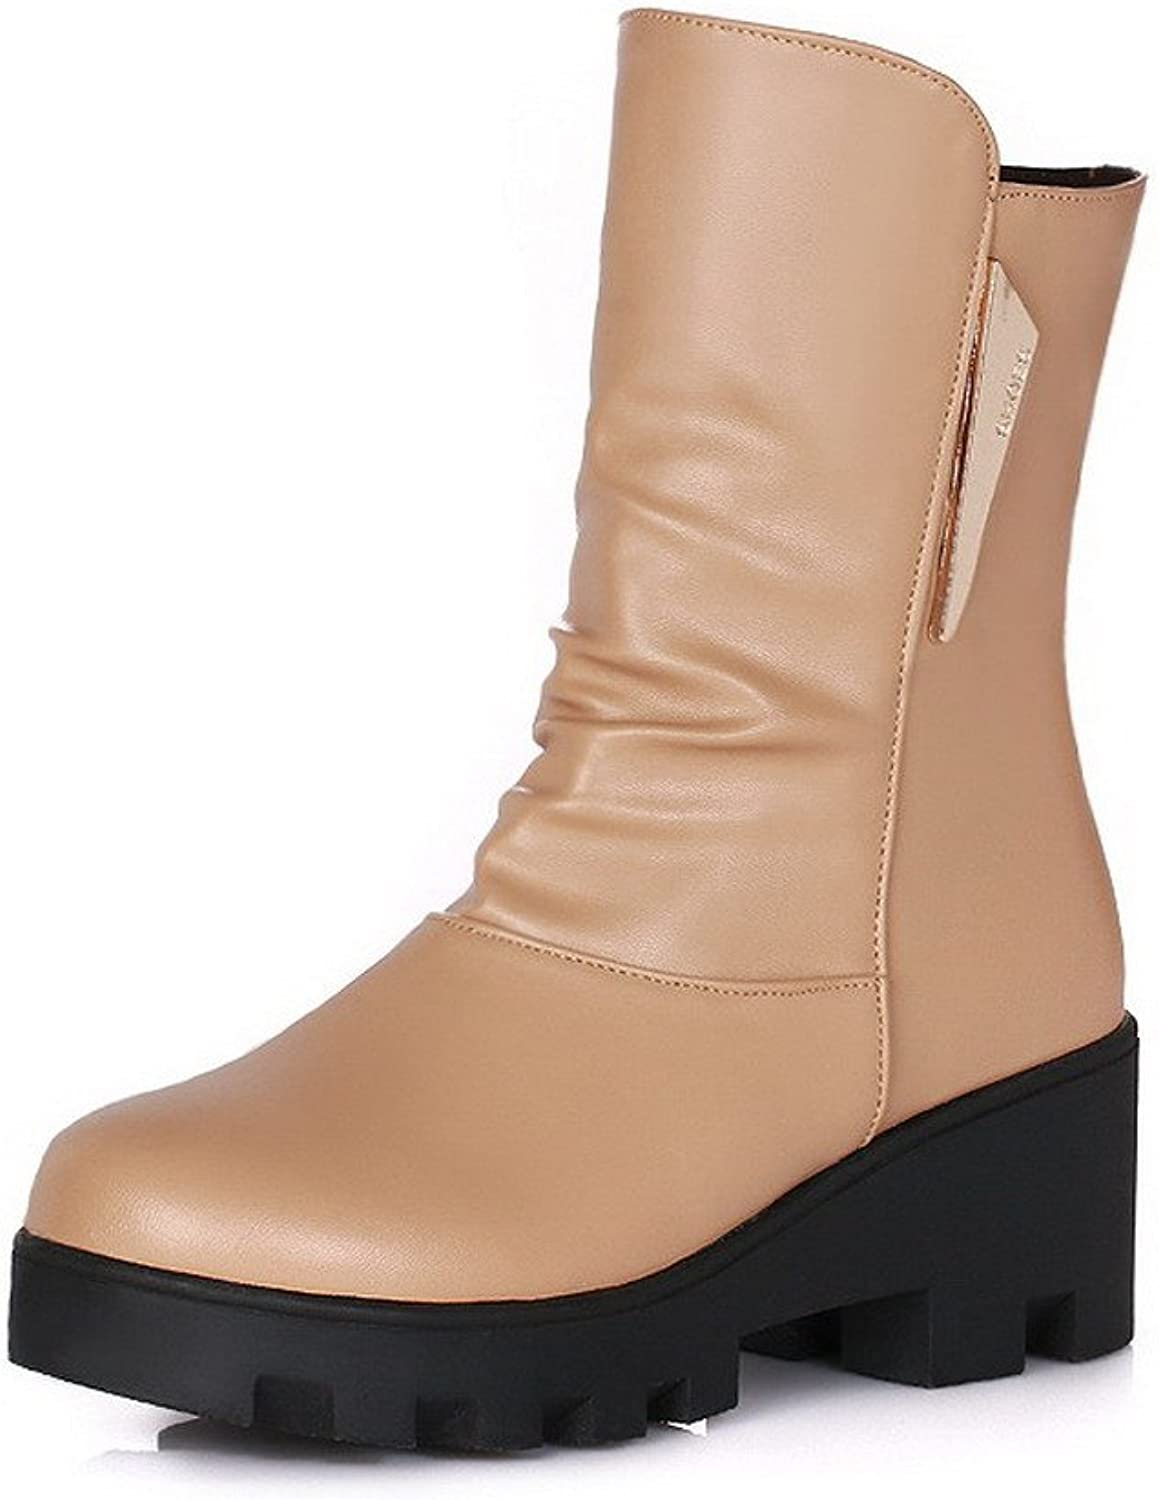 WeenFashion Women's Pull On Pu Round Closed Toe Kitten Heels Solid Boots